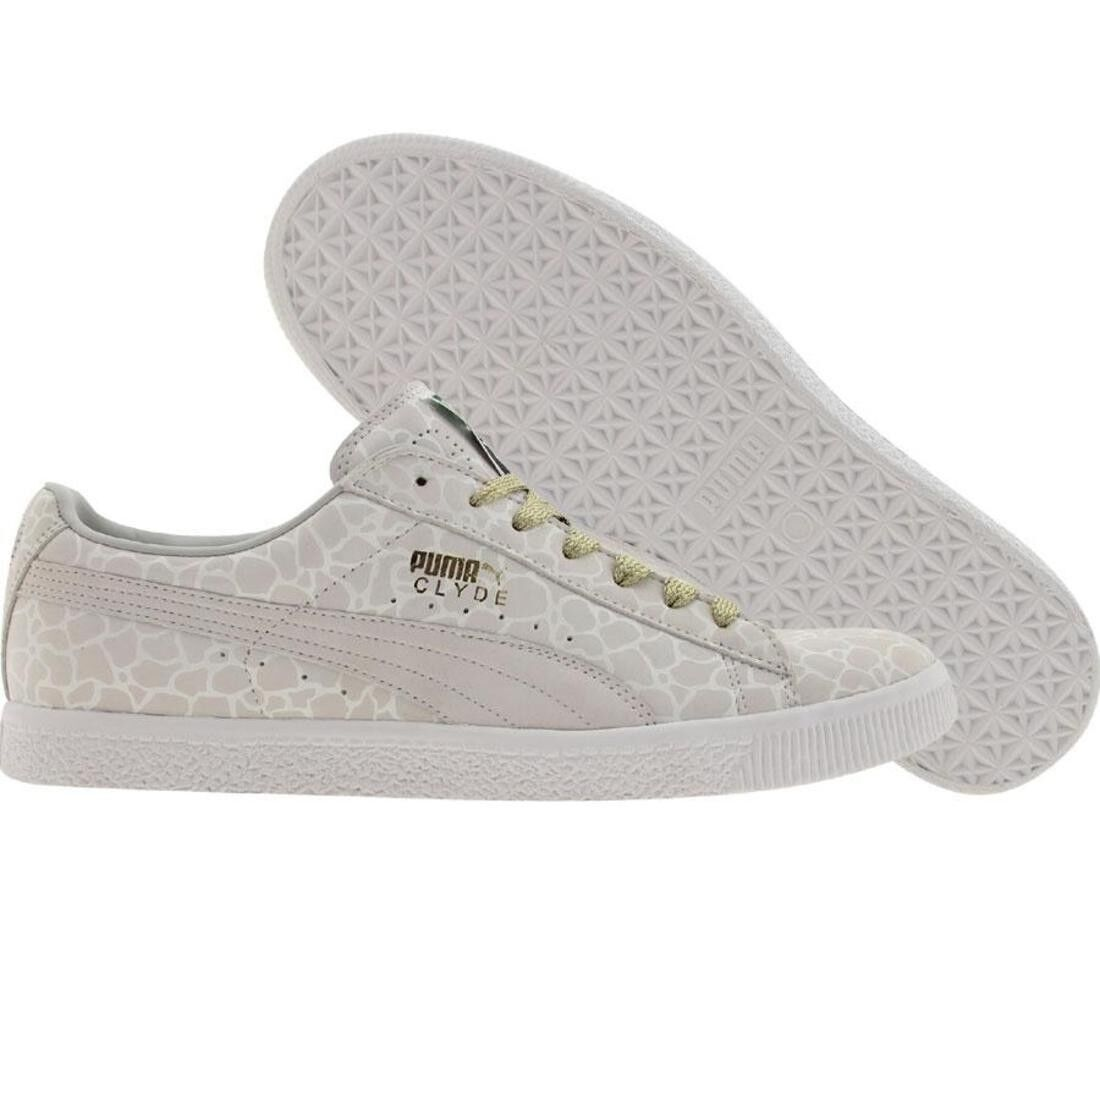 94.99 Leather Puma ROB L Clyde Leather 94.99 (white / gold) 345827-02 5a5edf